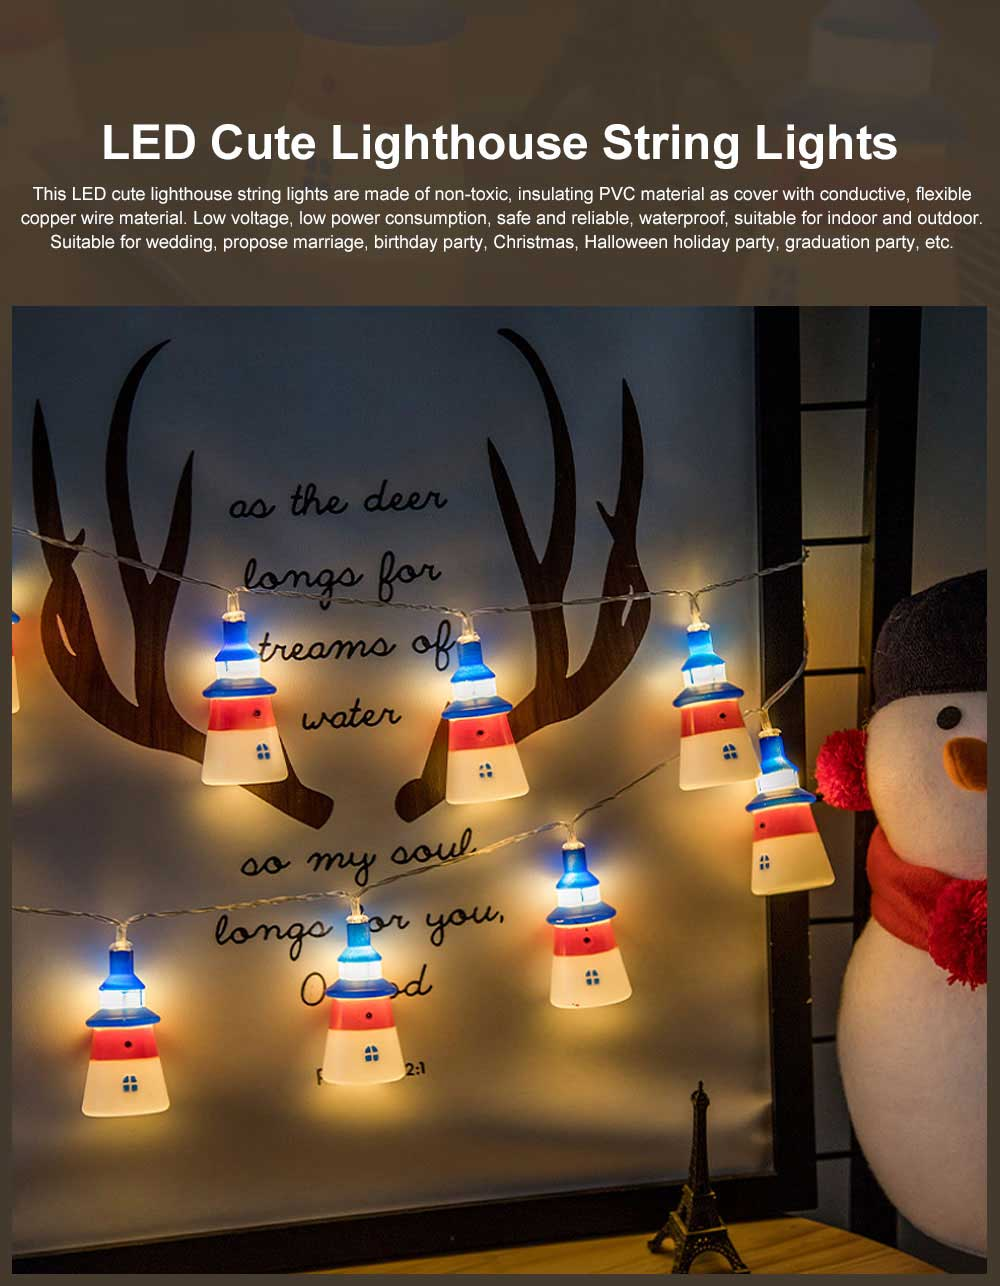 LED Cute Lighthouse String Lights Copper Wire Romantic Atmosphere Decoration LED Light String Flash Colorful Lamp for Indoor Outdoor Decorations 0